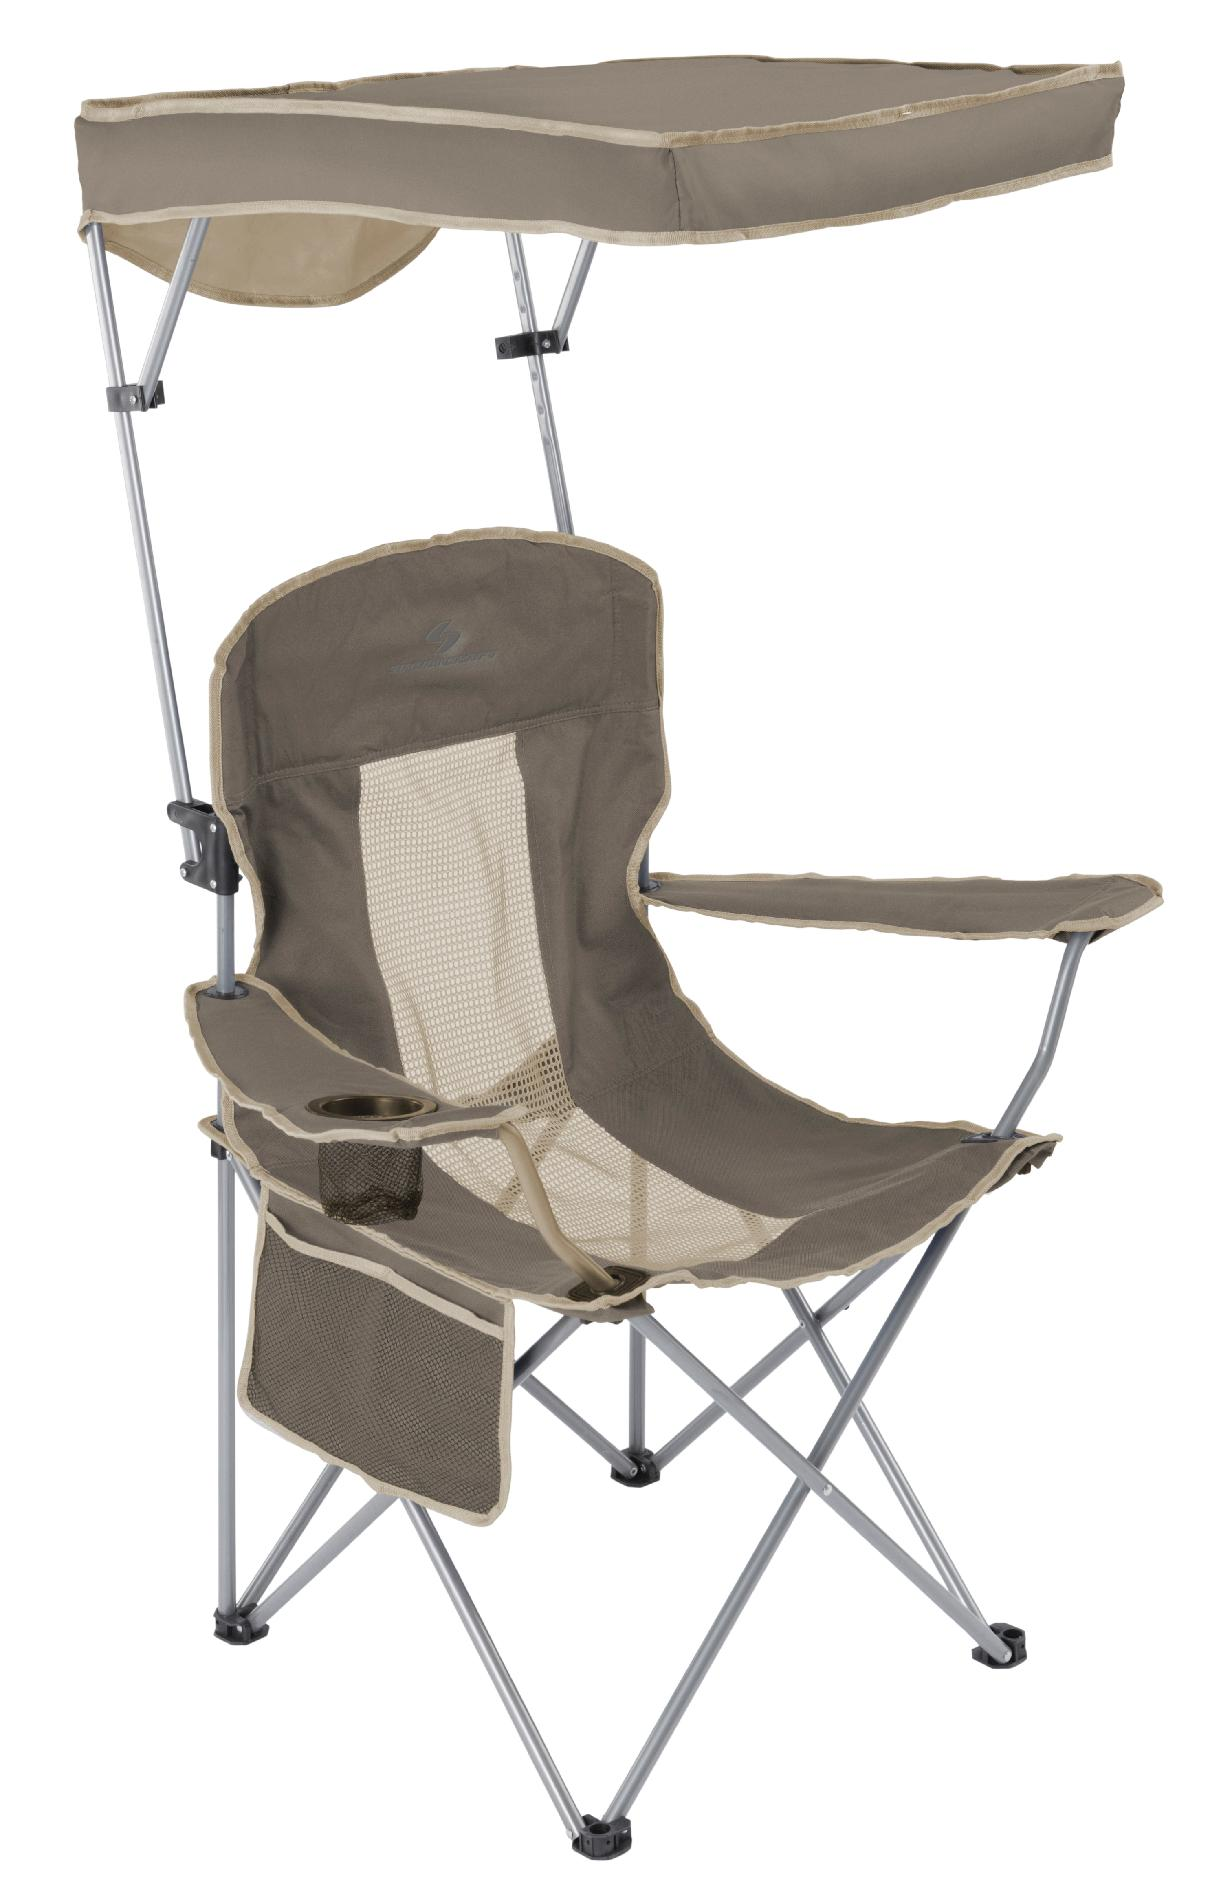 Camping Chairs With Canopy Sportcraft Canopy Chair